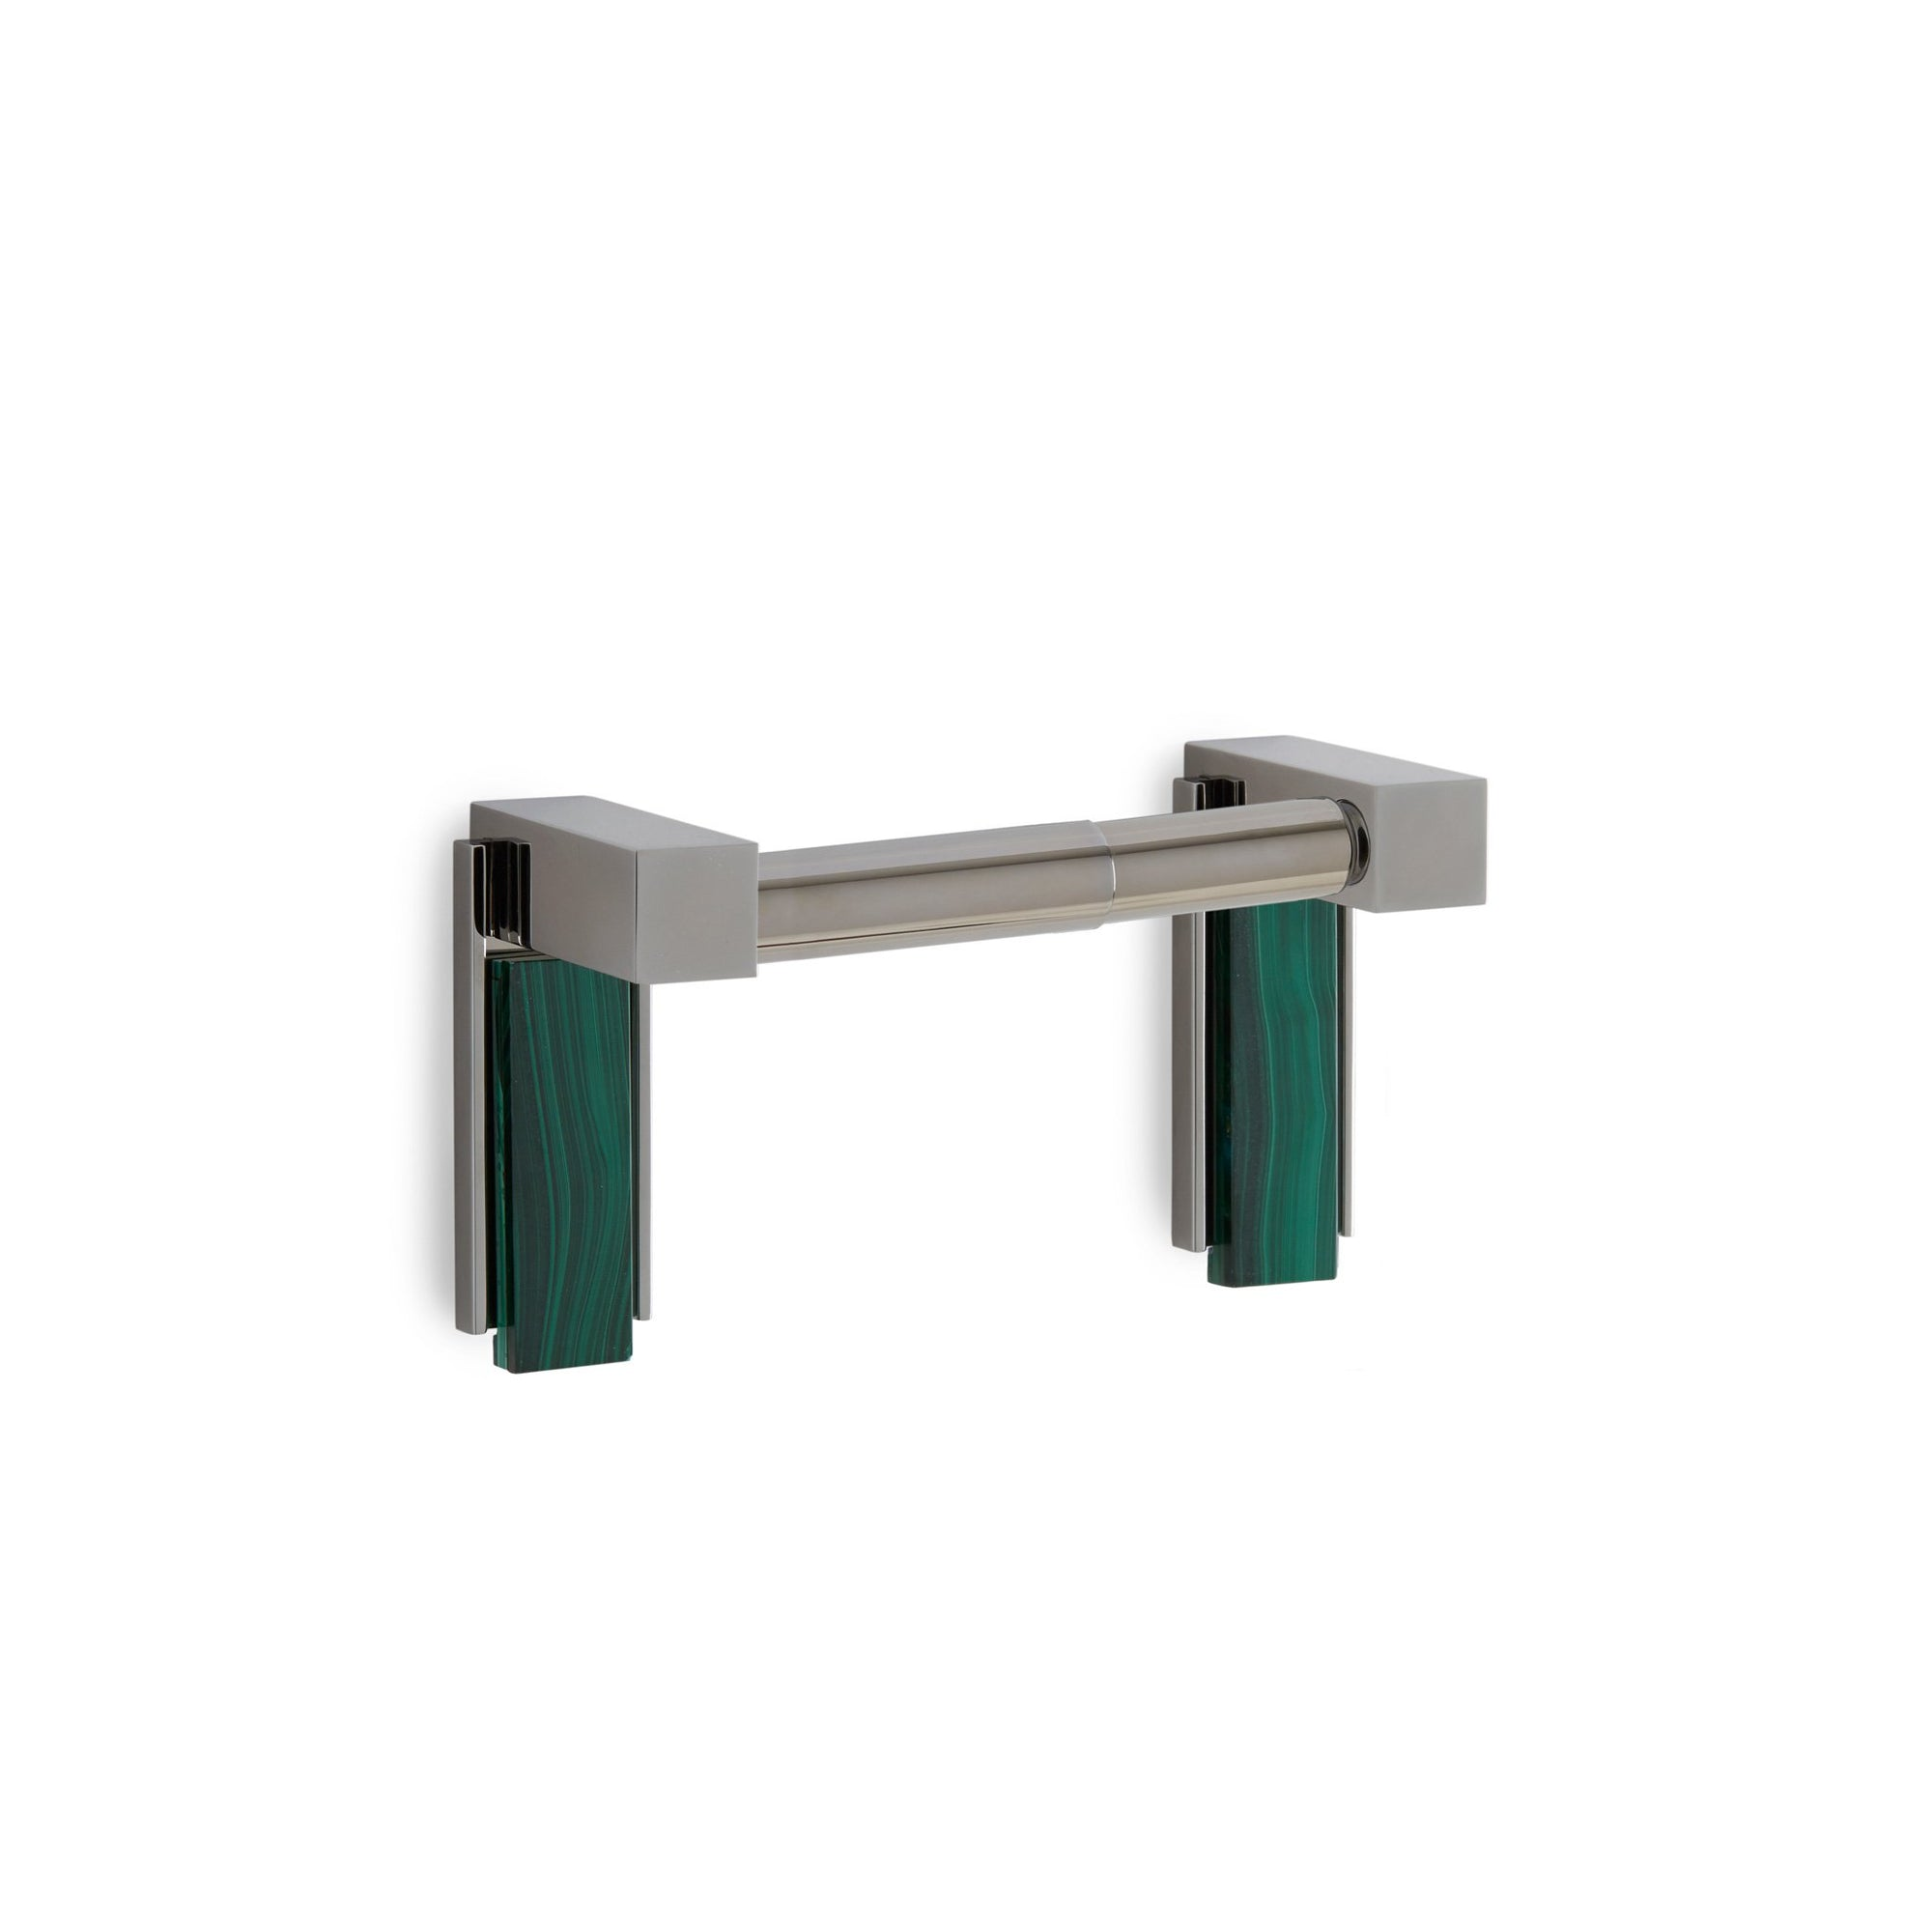 3457-DP-MALA-CP Sherle Wagner International Apollo Double Post Paper Holder with Malachite insert in Polished Chrome metal finish